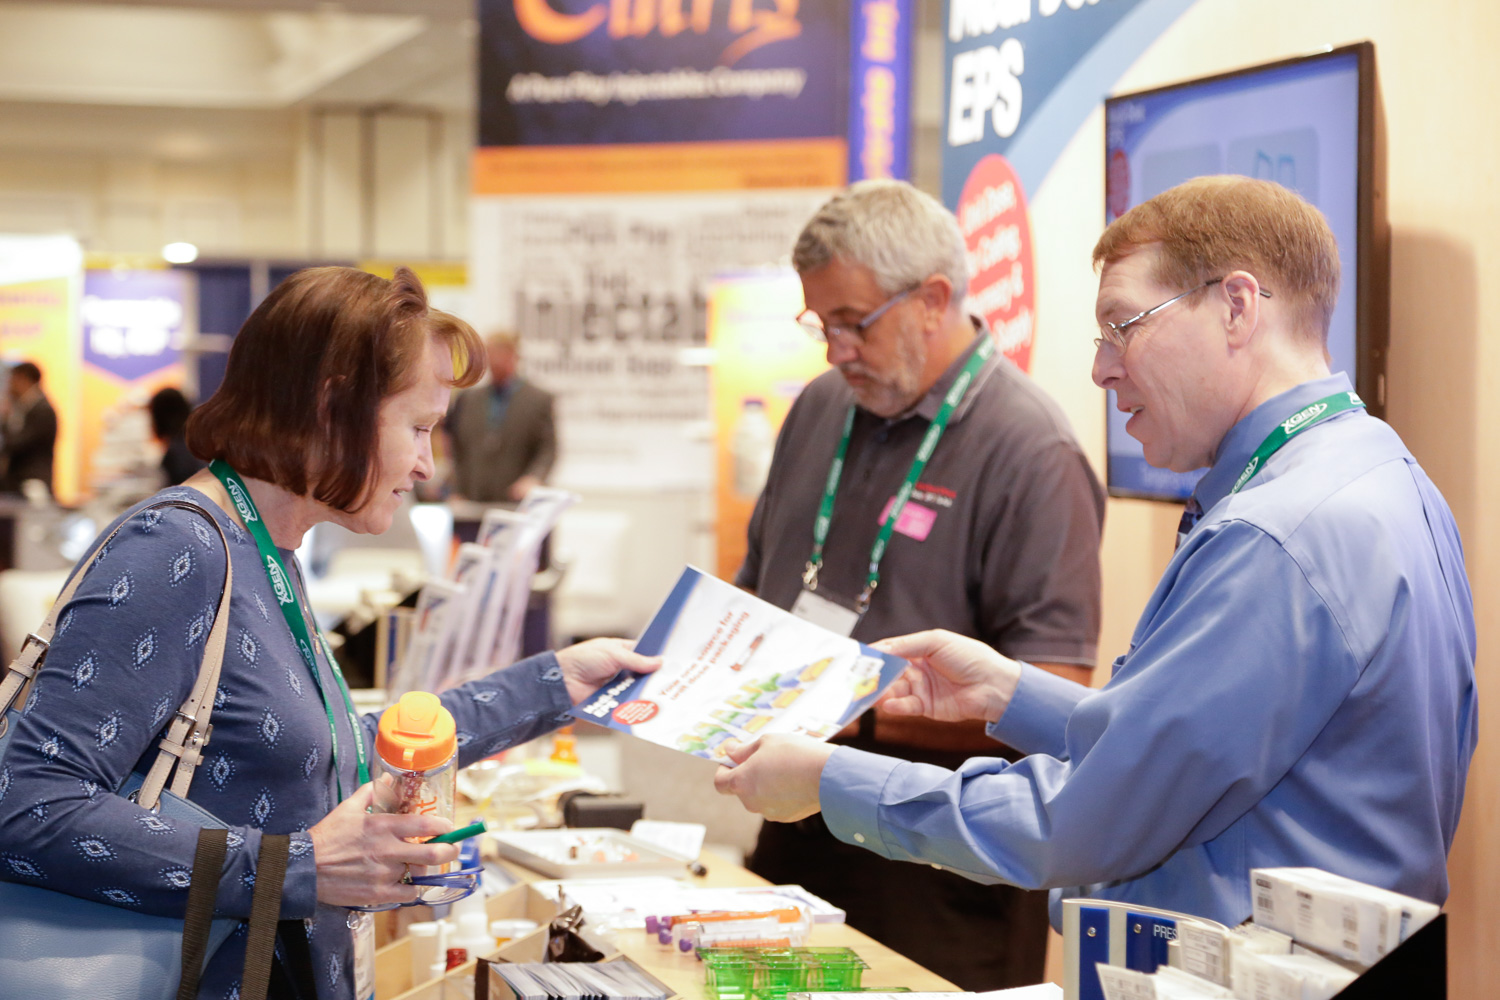 Annual nppa conference nppa national pharmacy purchasing attendees xflitez Gallery